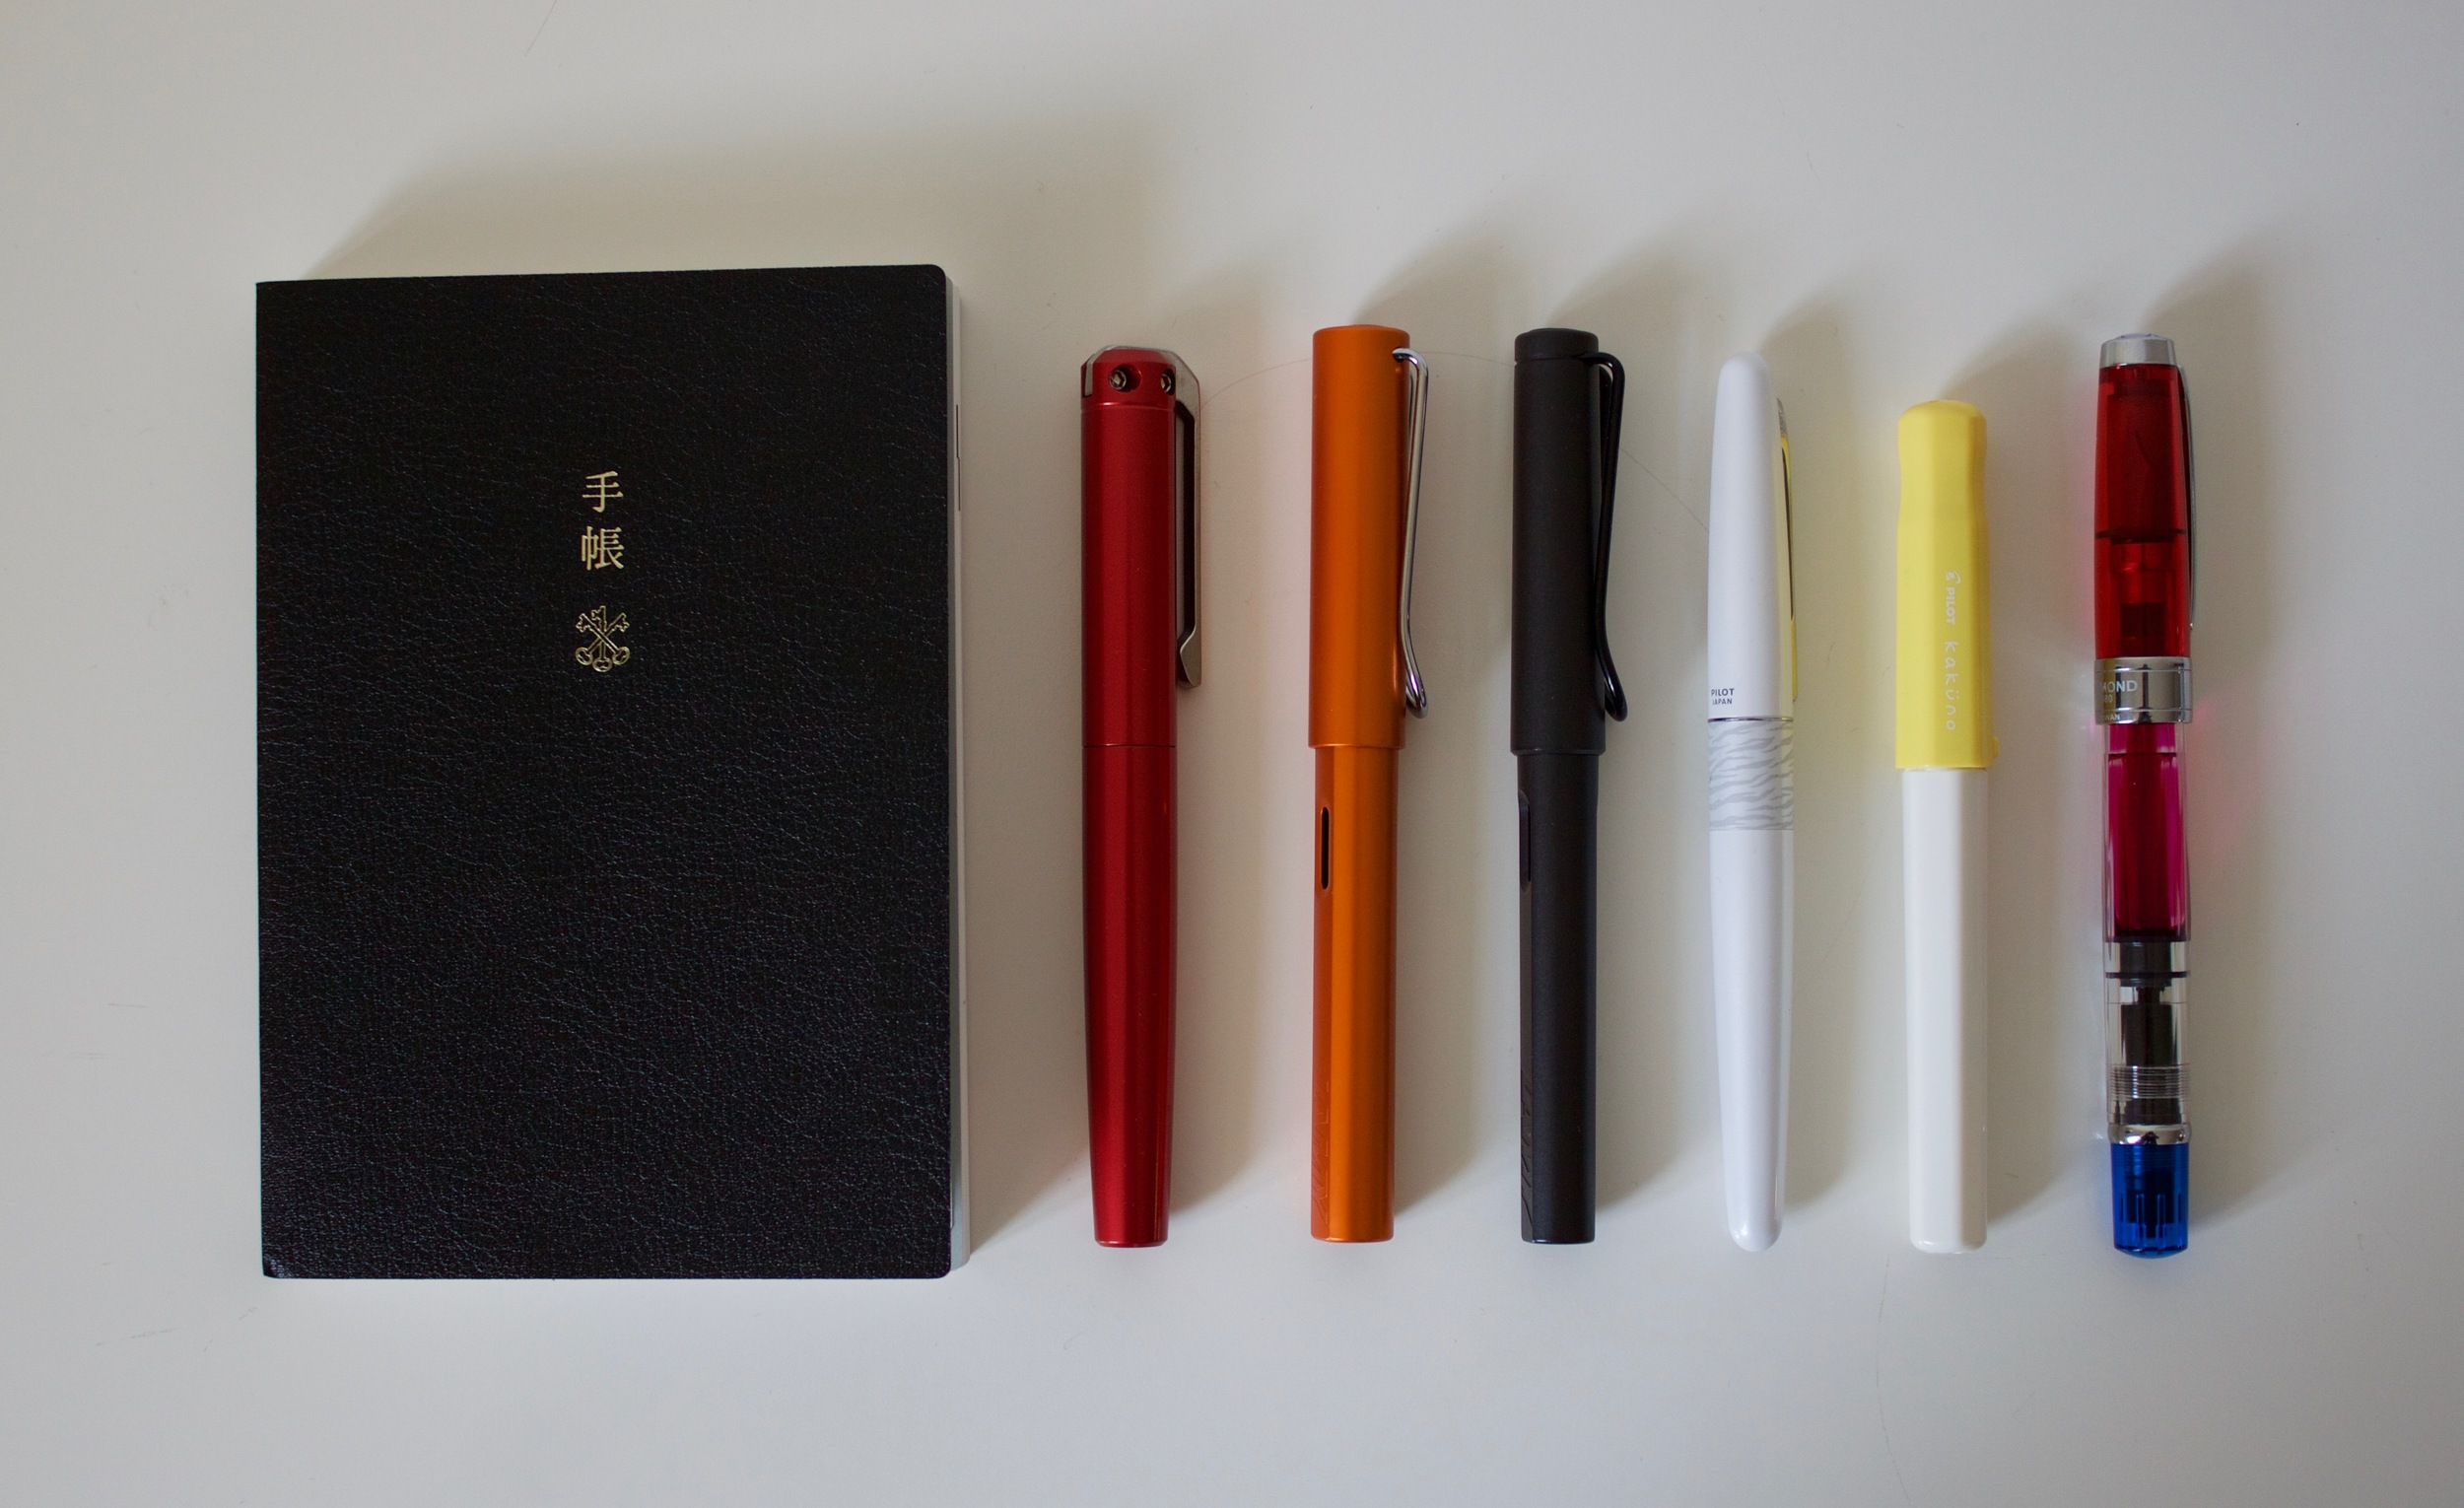 My Hobonichi Techo and the fountain pens I use most